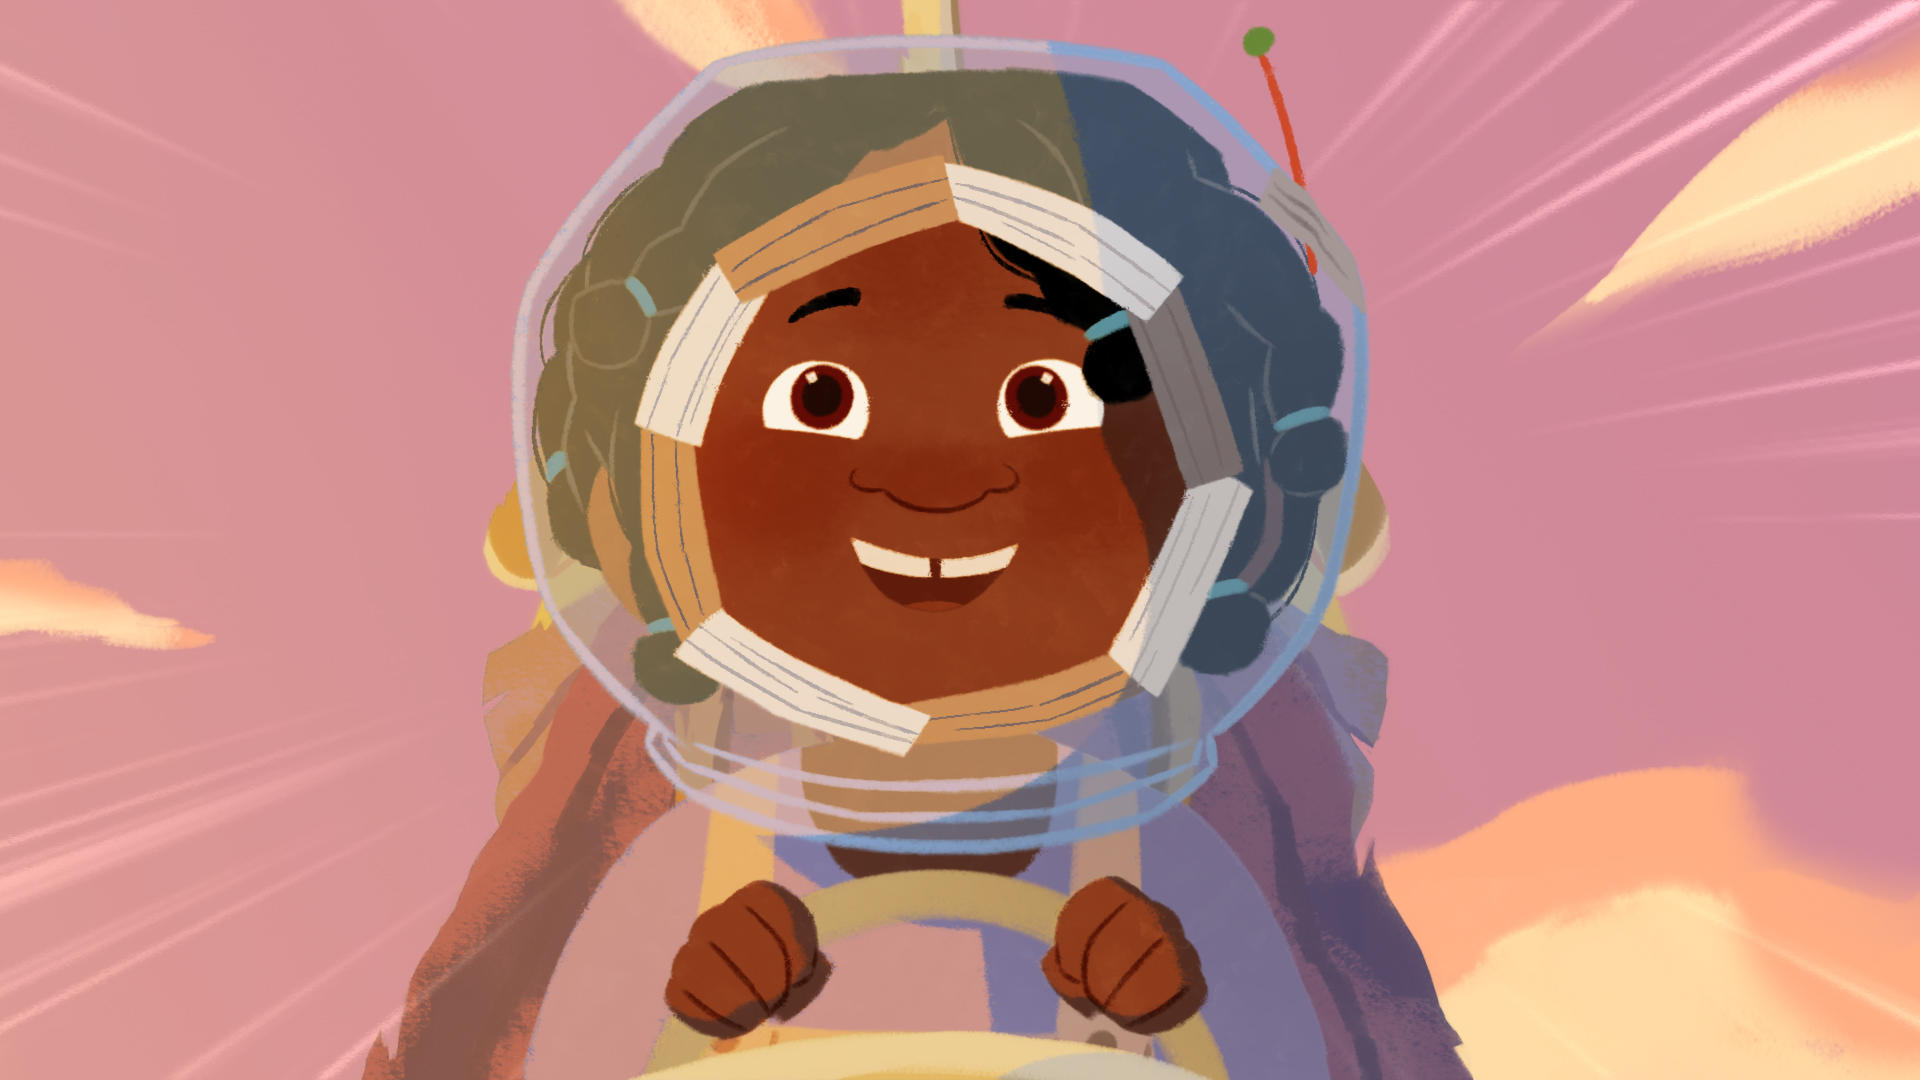 Fara's dreams of becoming an astronaut and flying to Mars seem to be coming true as she takes off in her homemade rocket.